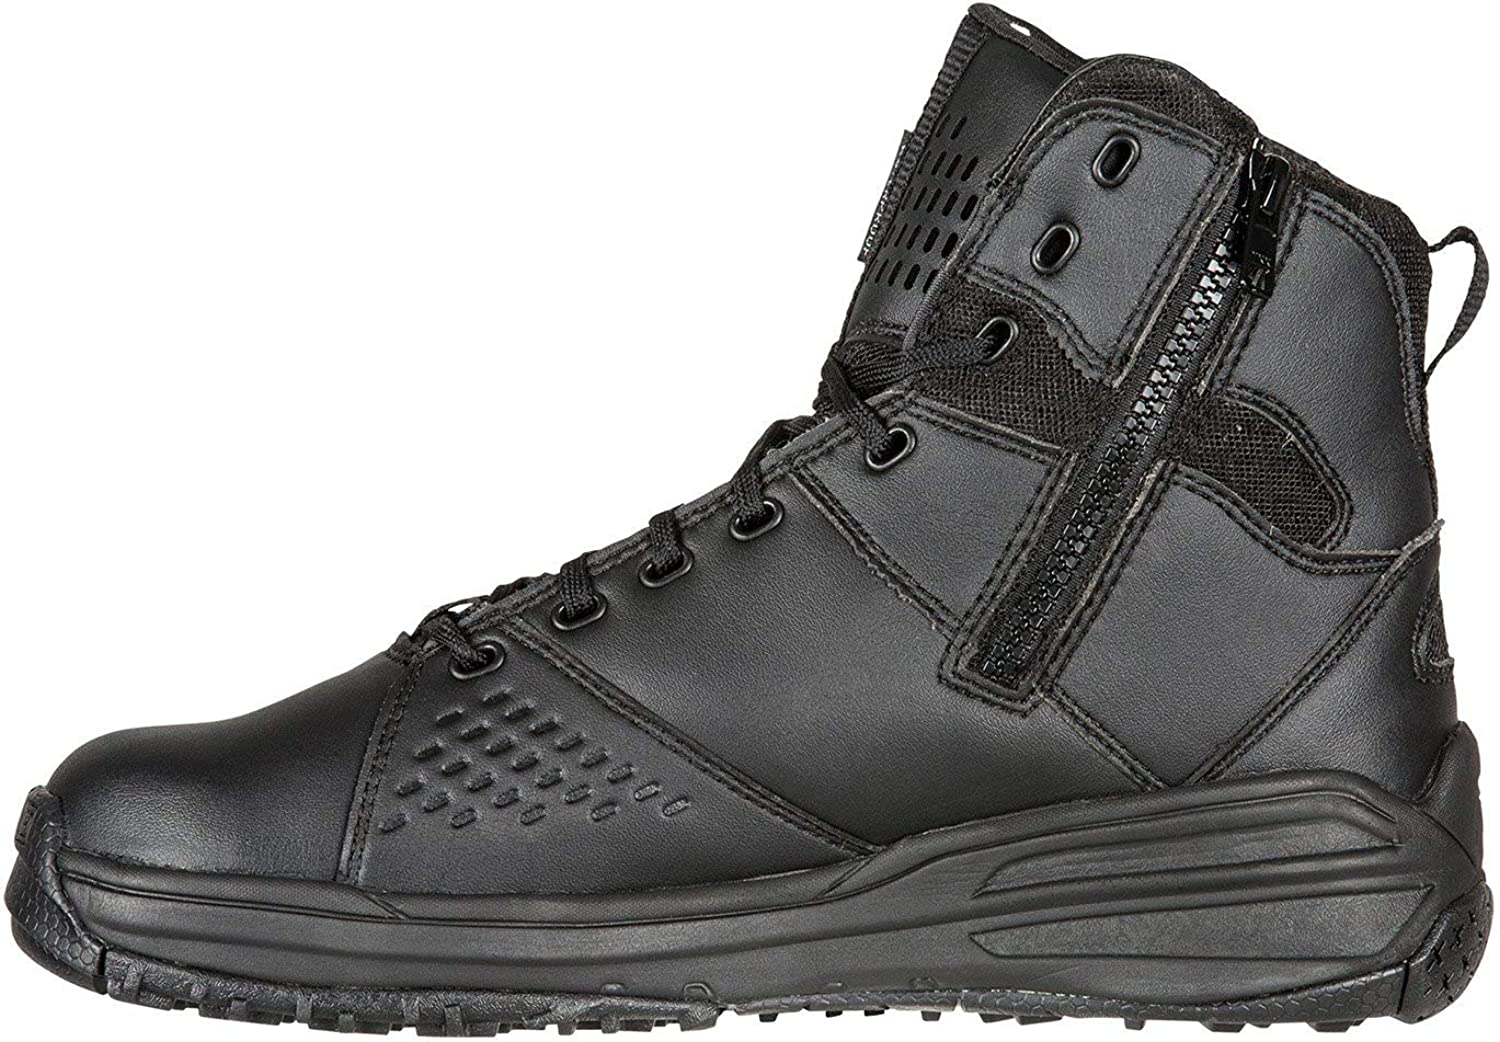 5.11 Tactical Men's Halcyon Waterproof Military Boots, Low Friction, Odor Control, Style 12372